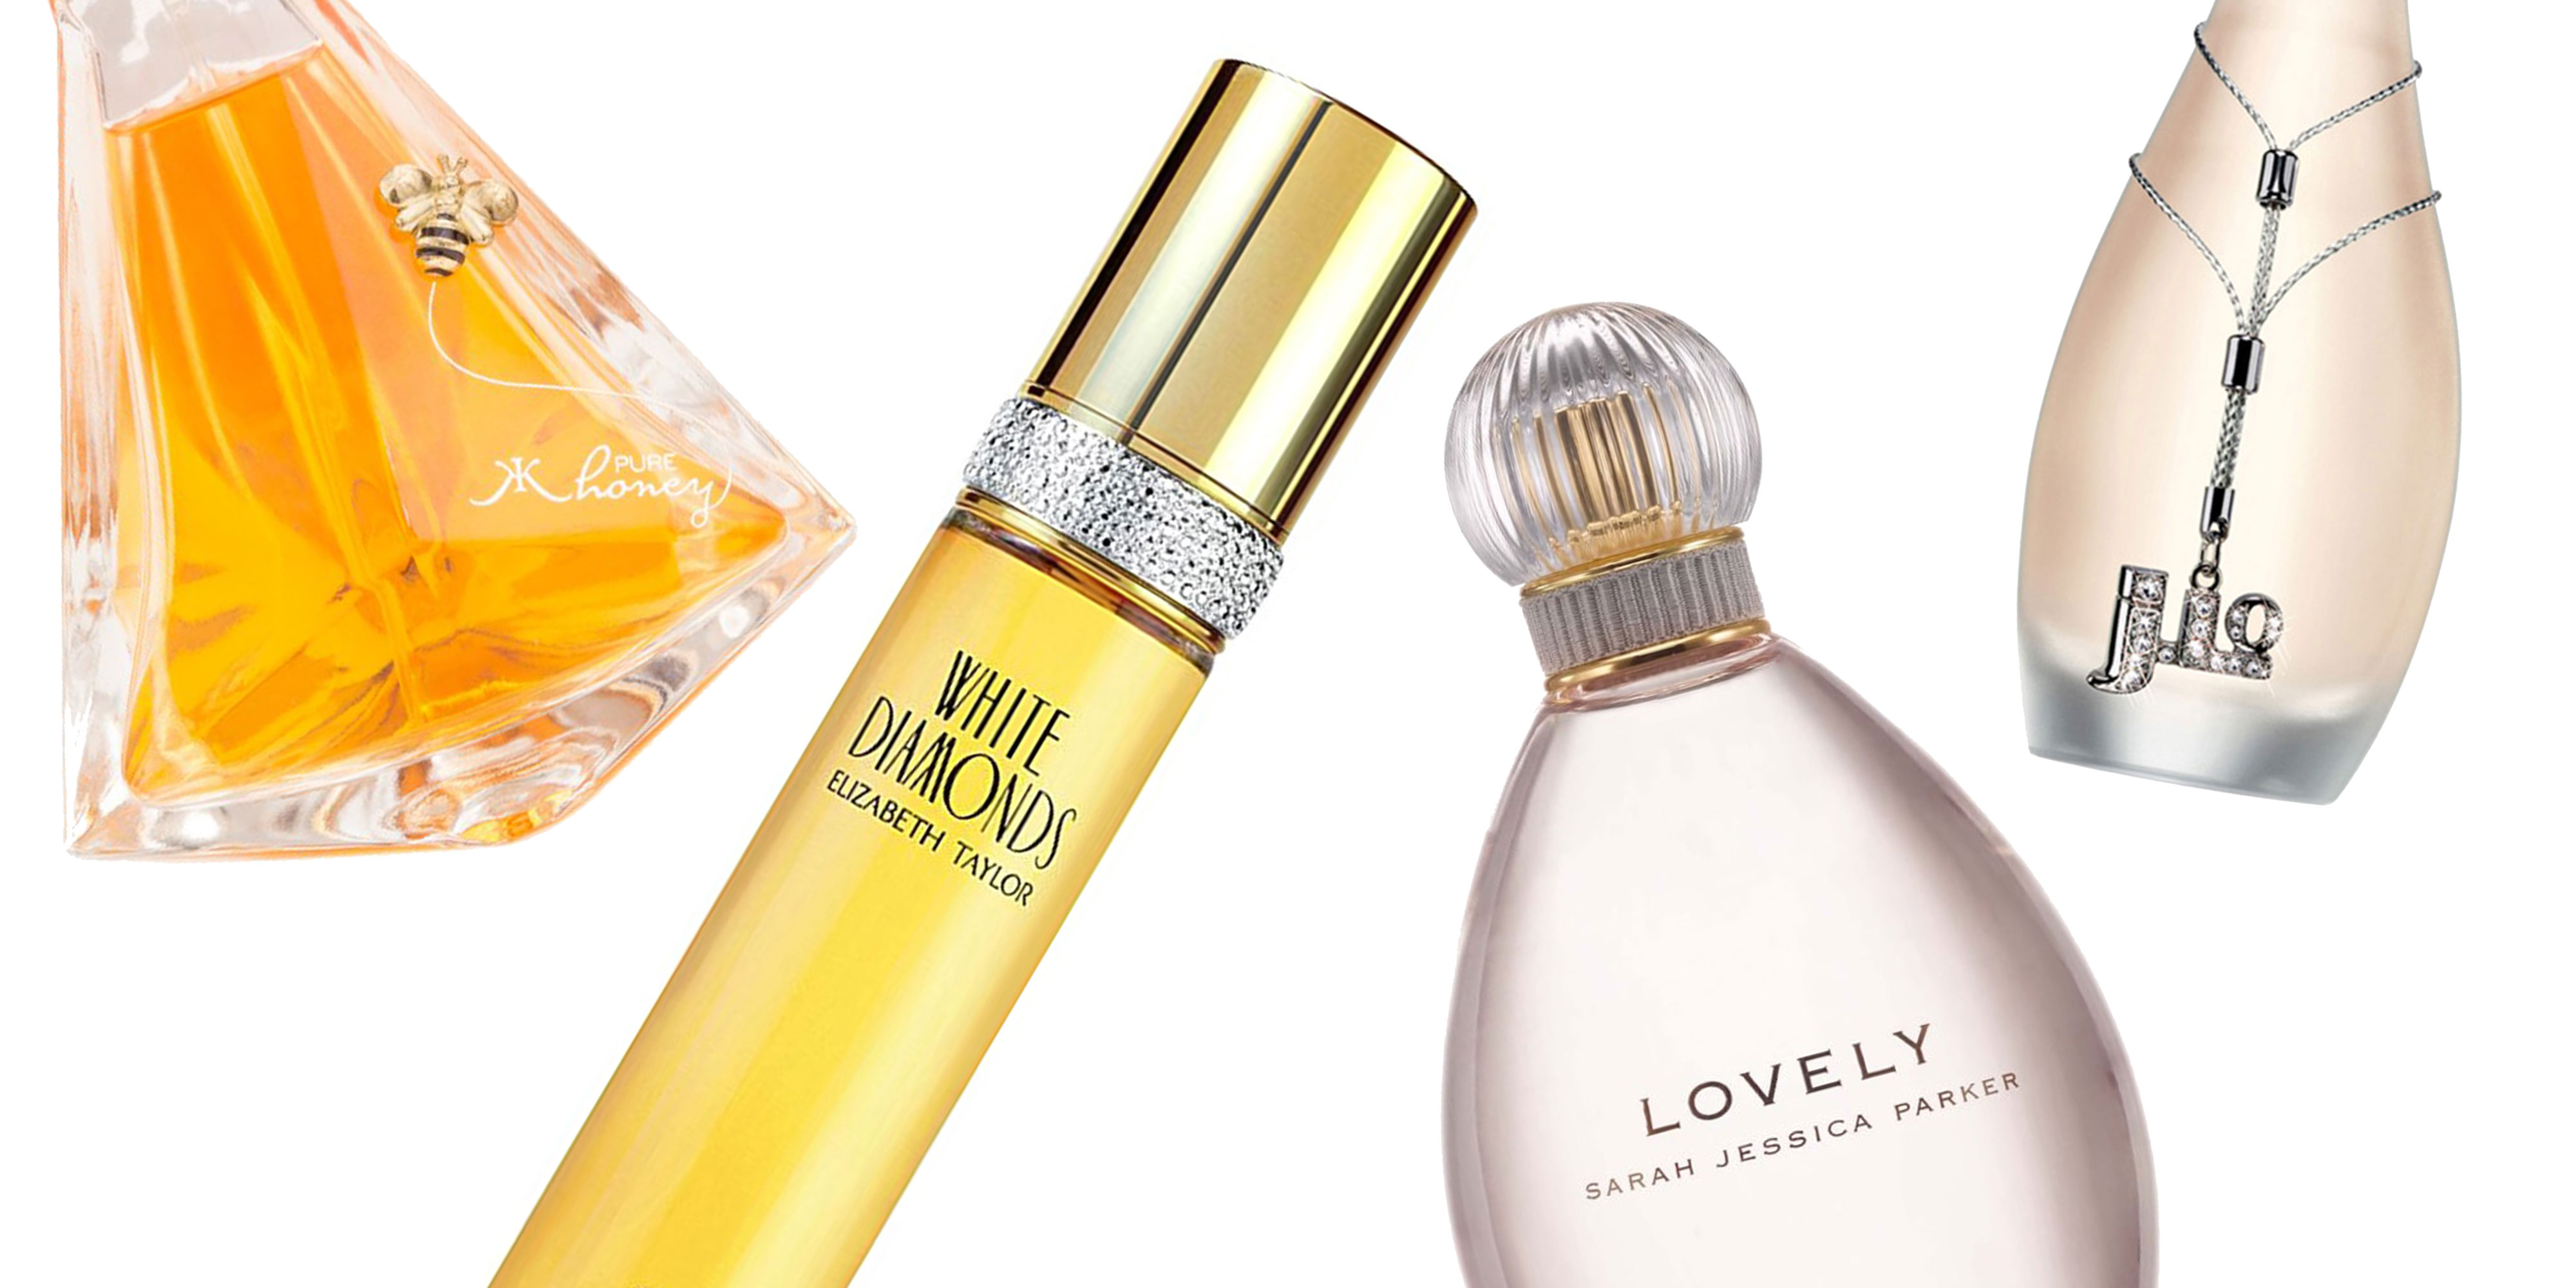 The 10 Best-Selling Celebrity Perfumes - Hollywood Reporter